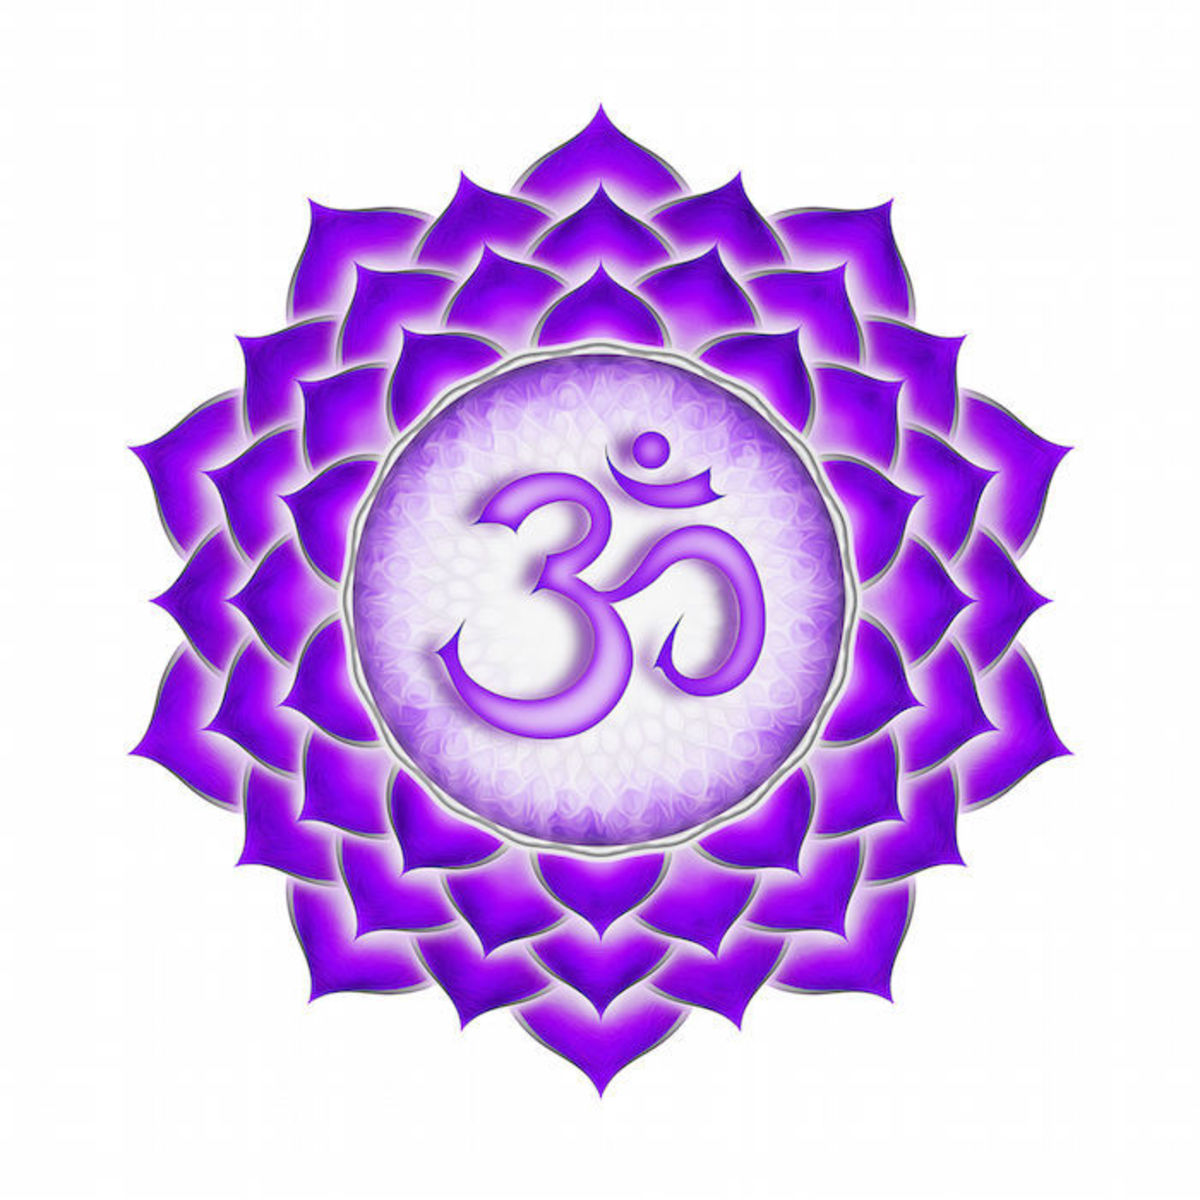 Diamonds are most strongly associated with the crown chakra, and can help aid in spiritual enlightenment.